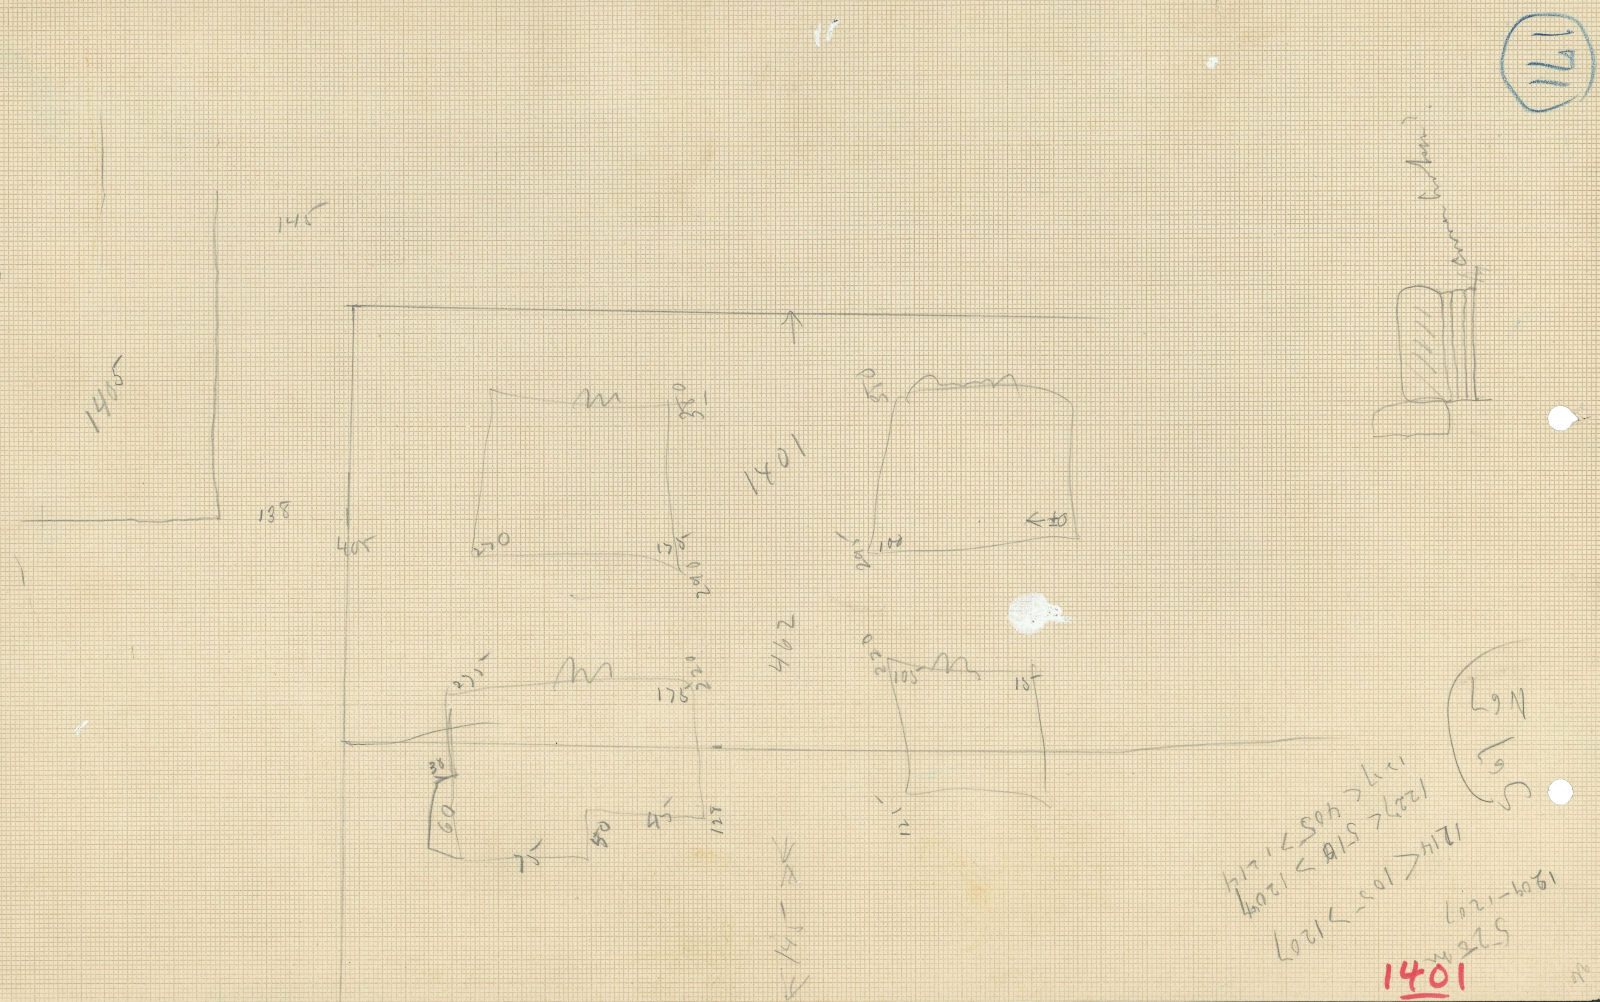 Maps and plans: G 1401, Sketch plan